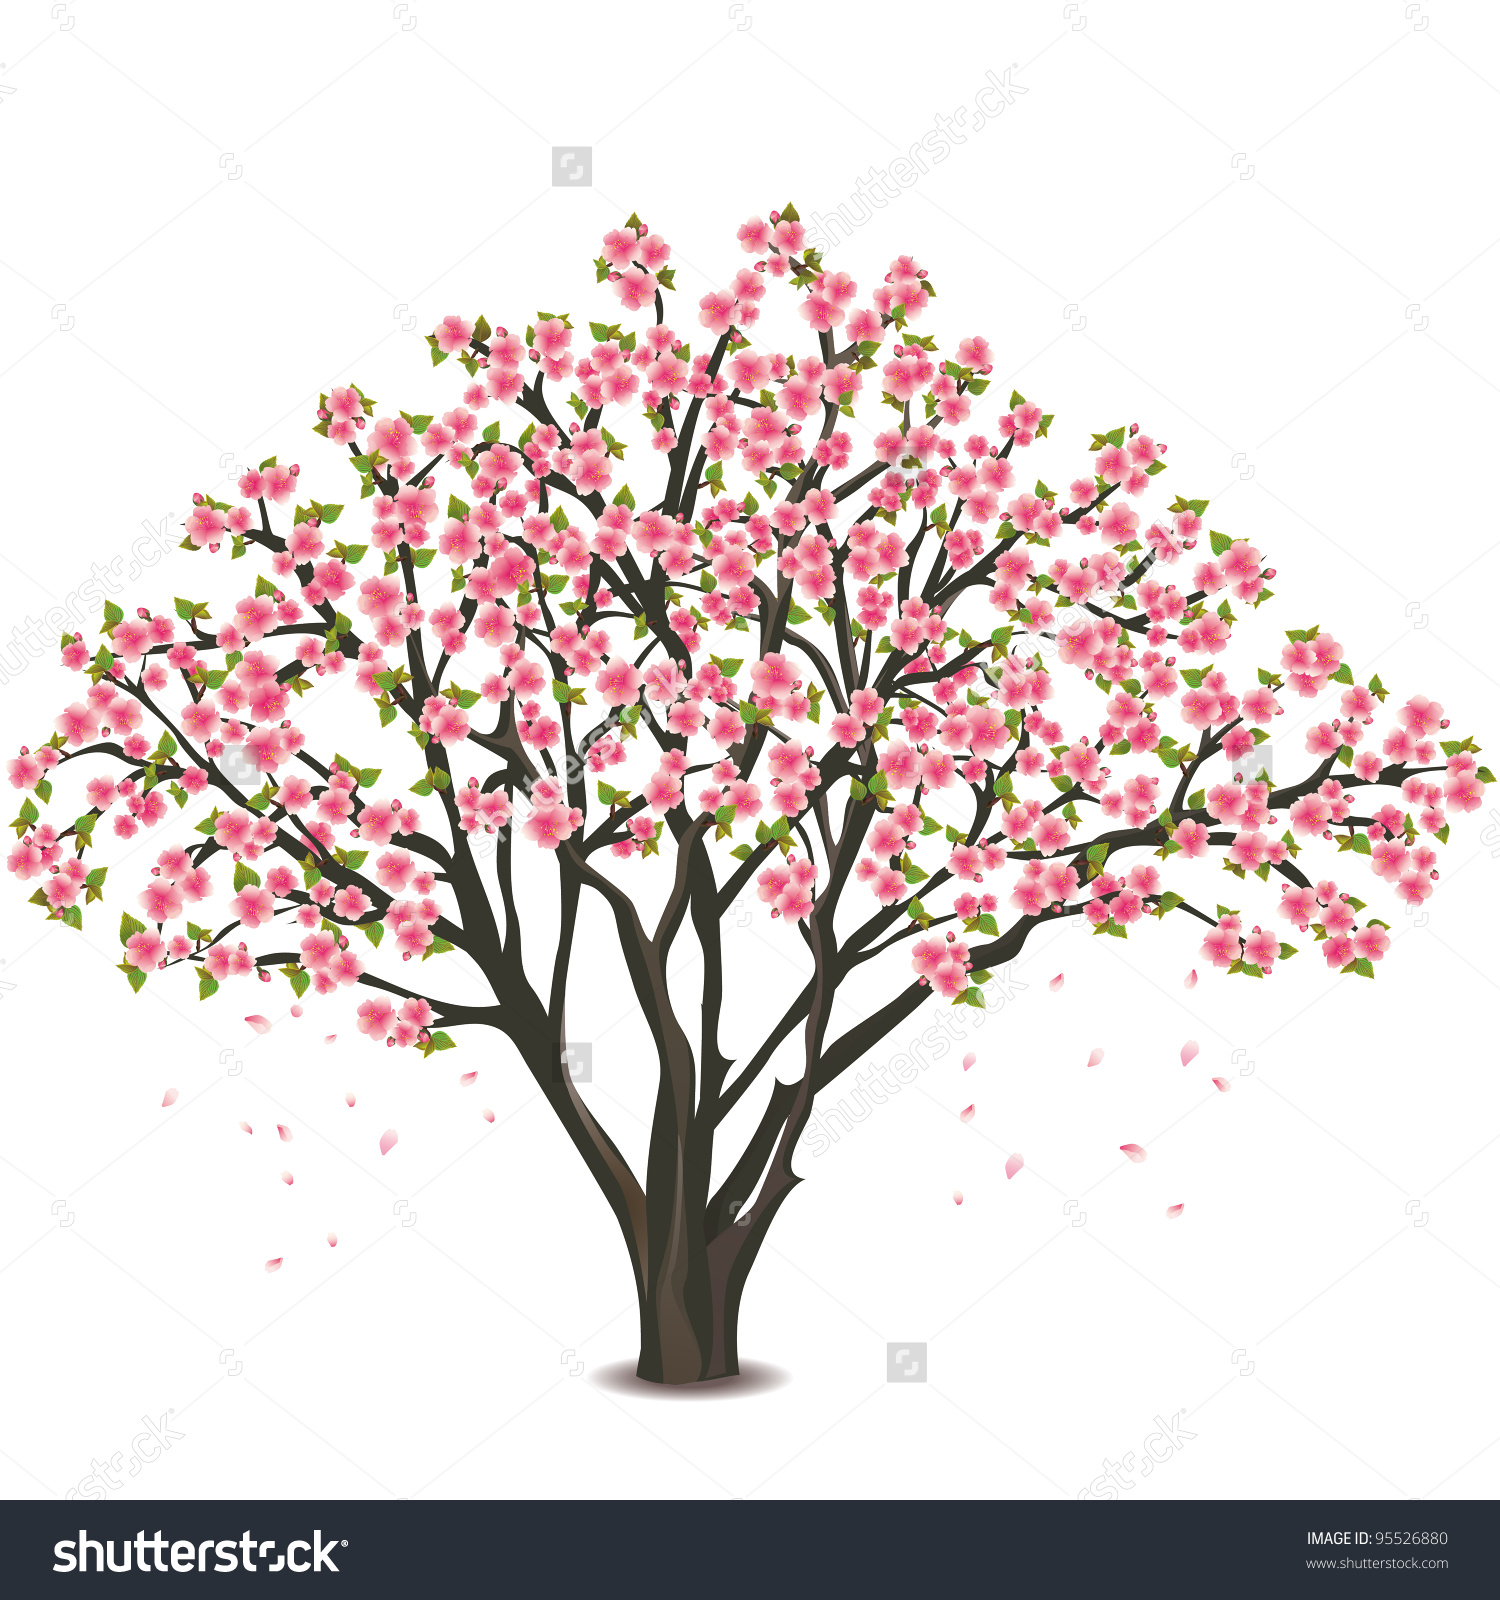 Cherry blossom tree clipart black background.